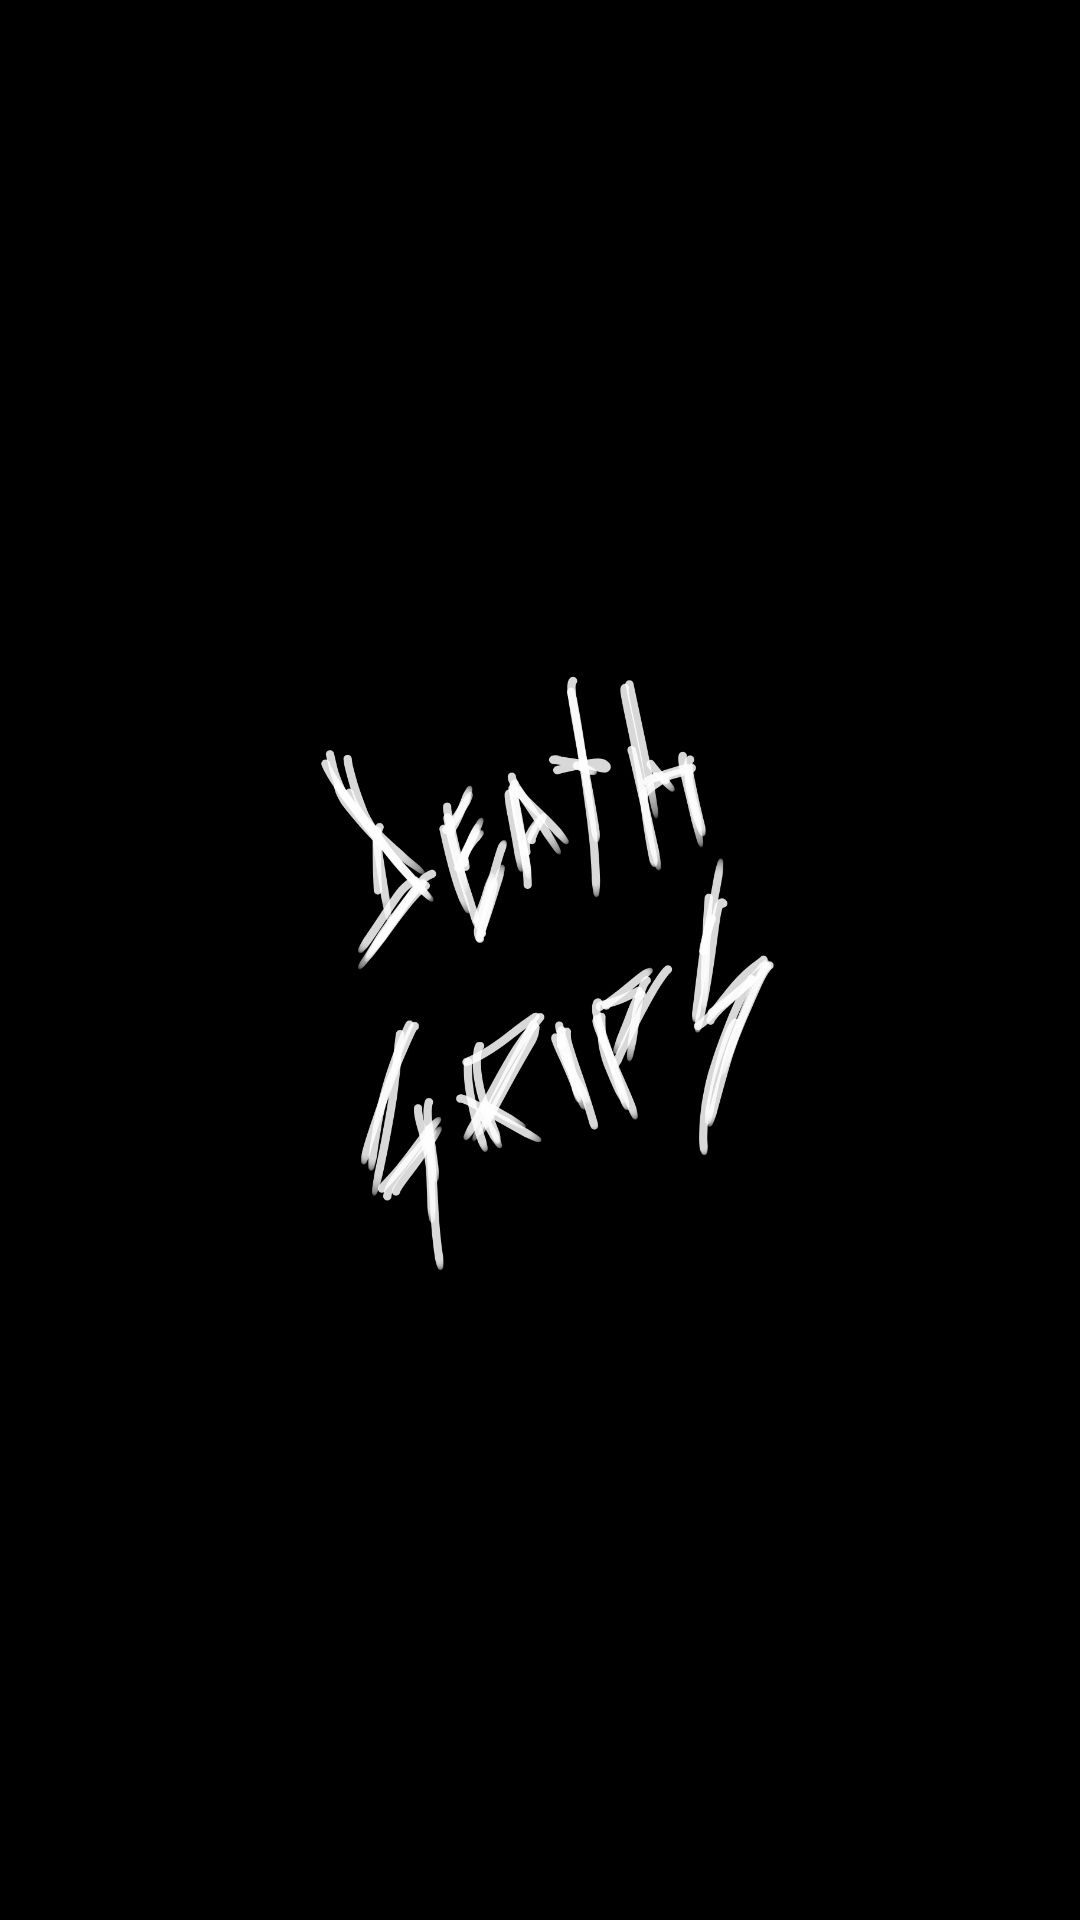 Death Grips Wallpapers Top Free Death Grips Backgrounds Wallpaperaccess